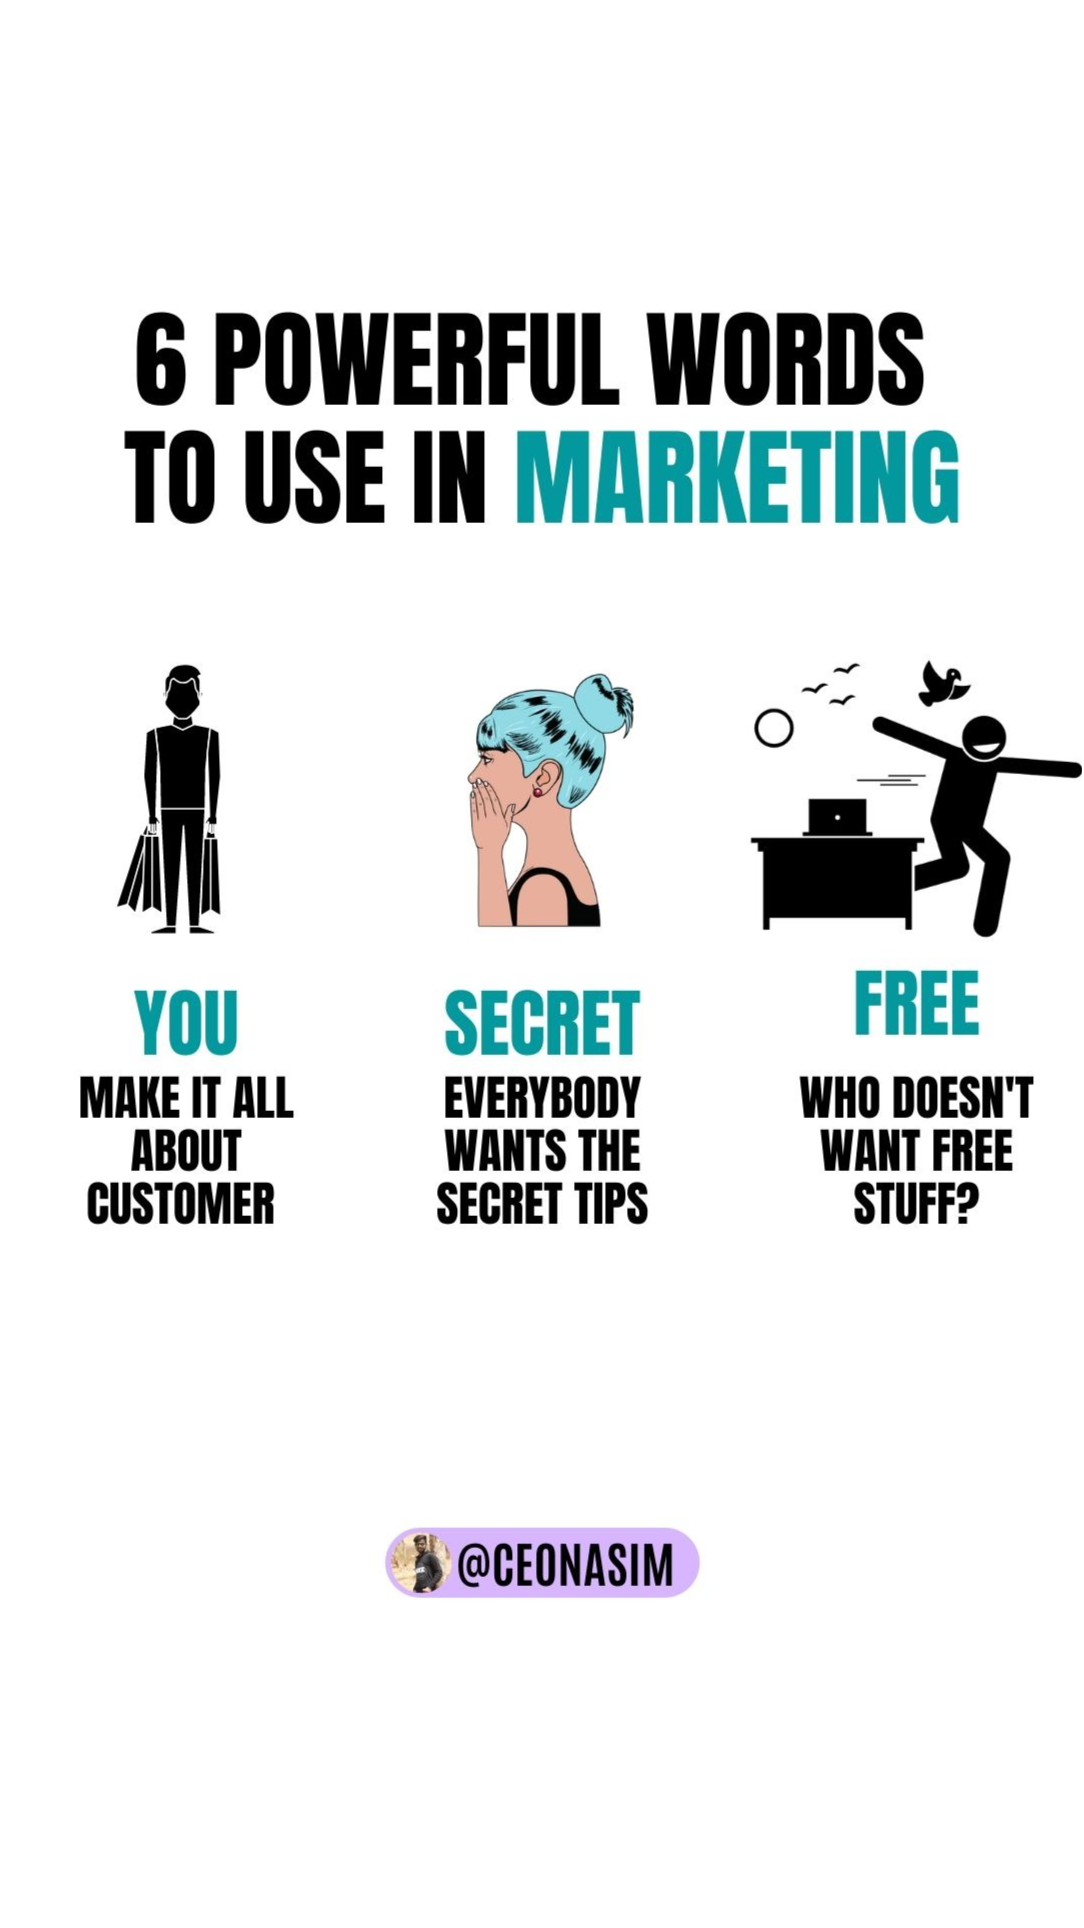 6 powerful words to use in marketing